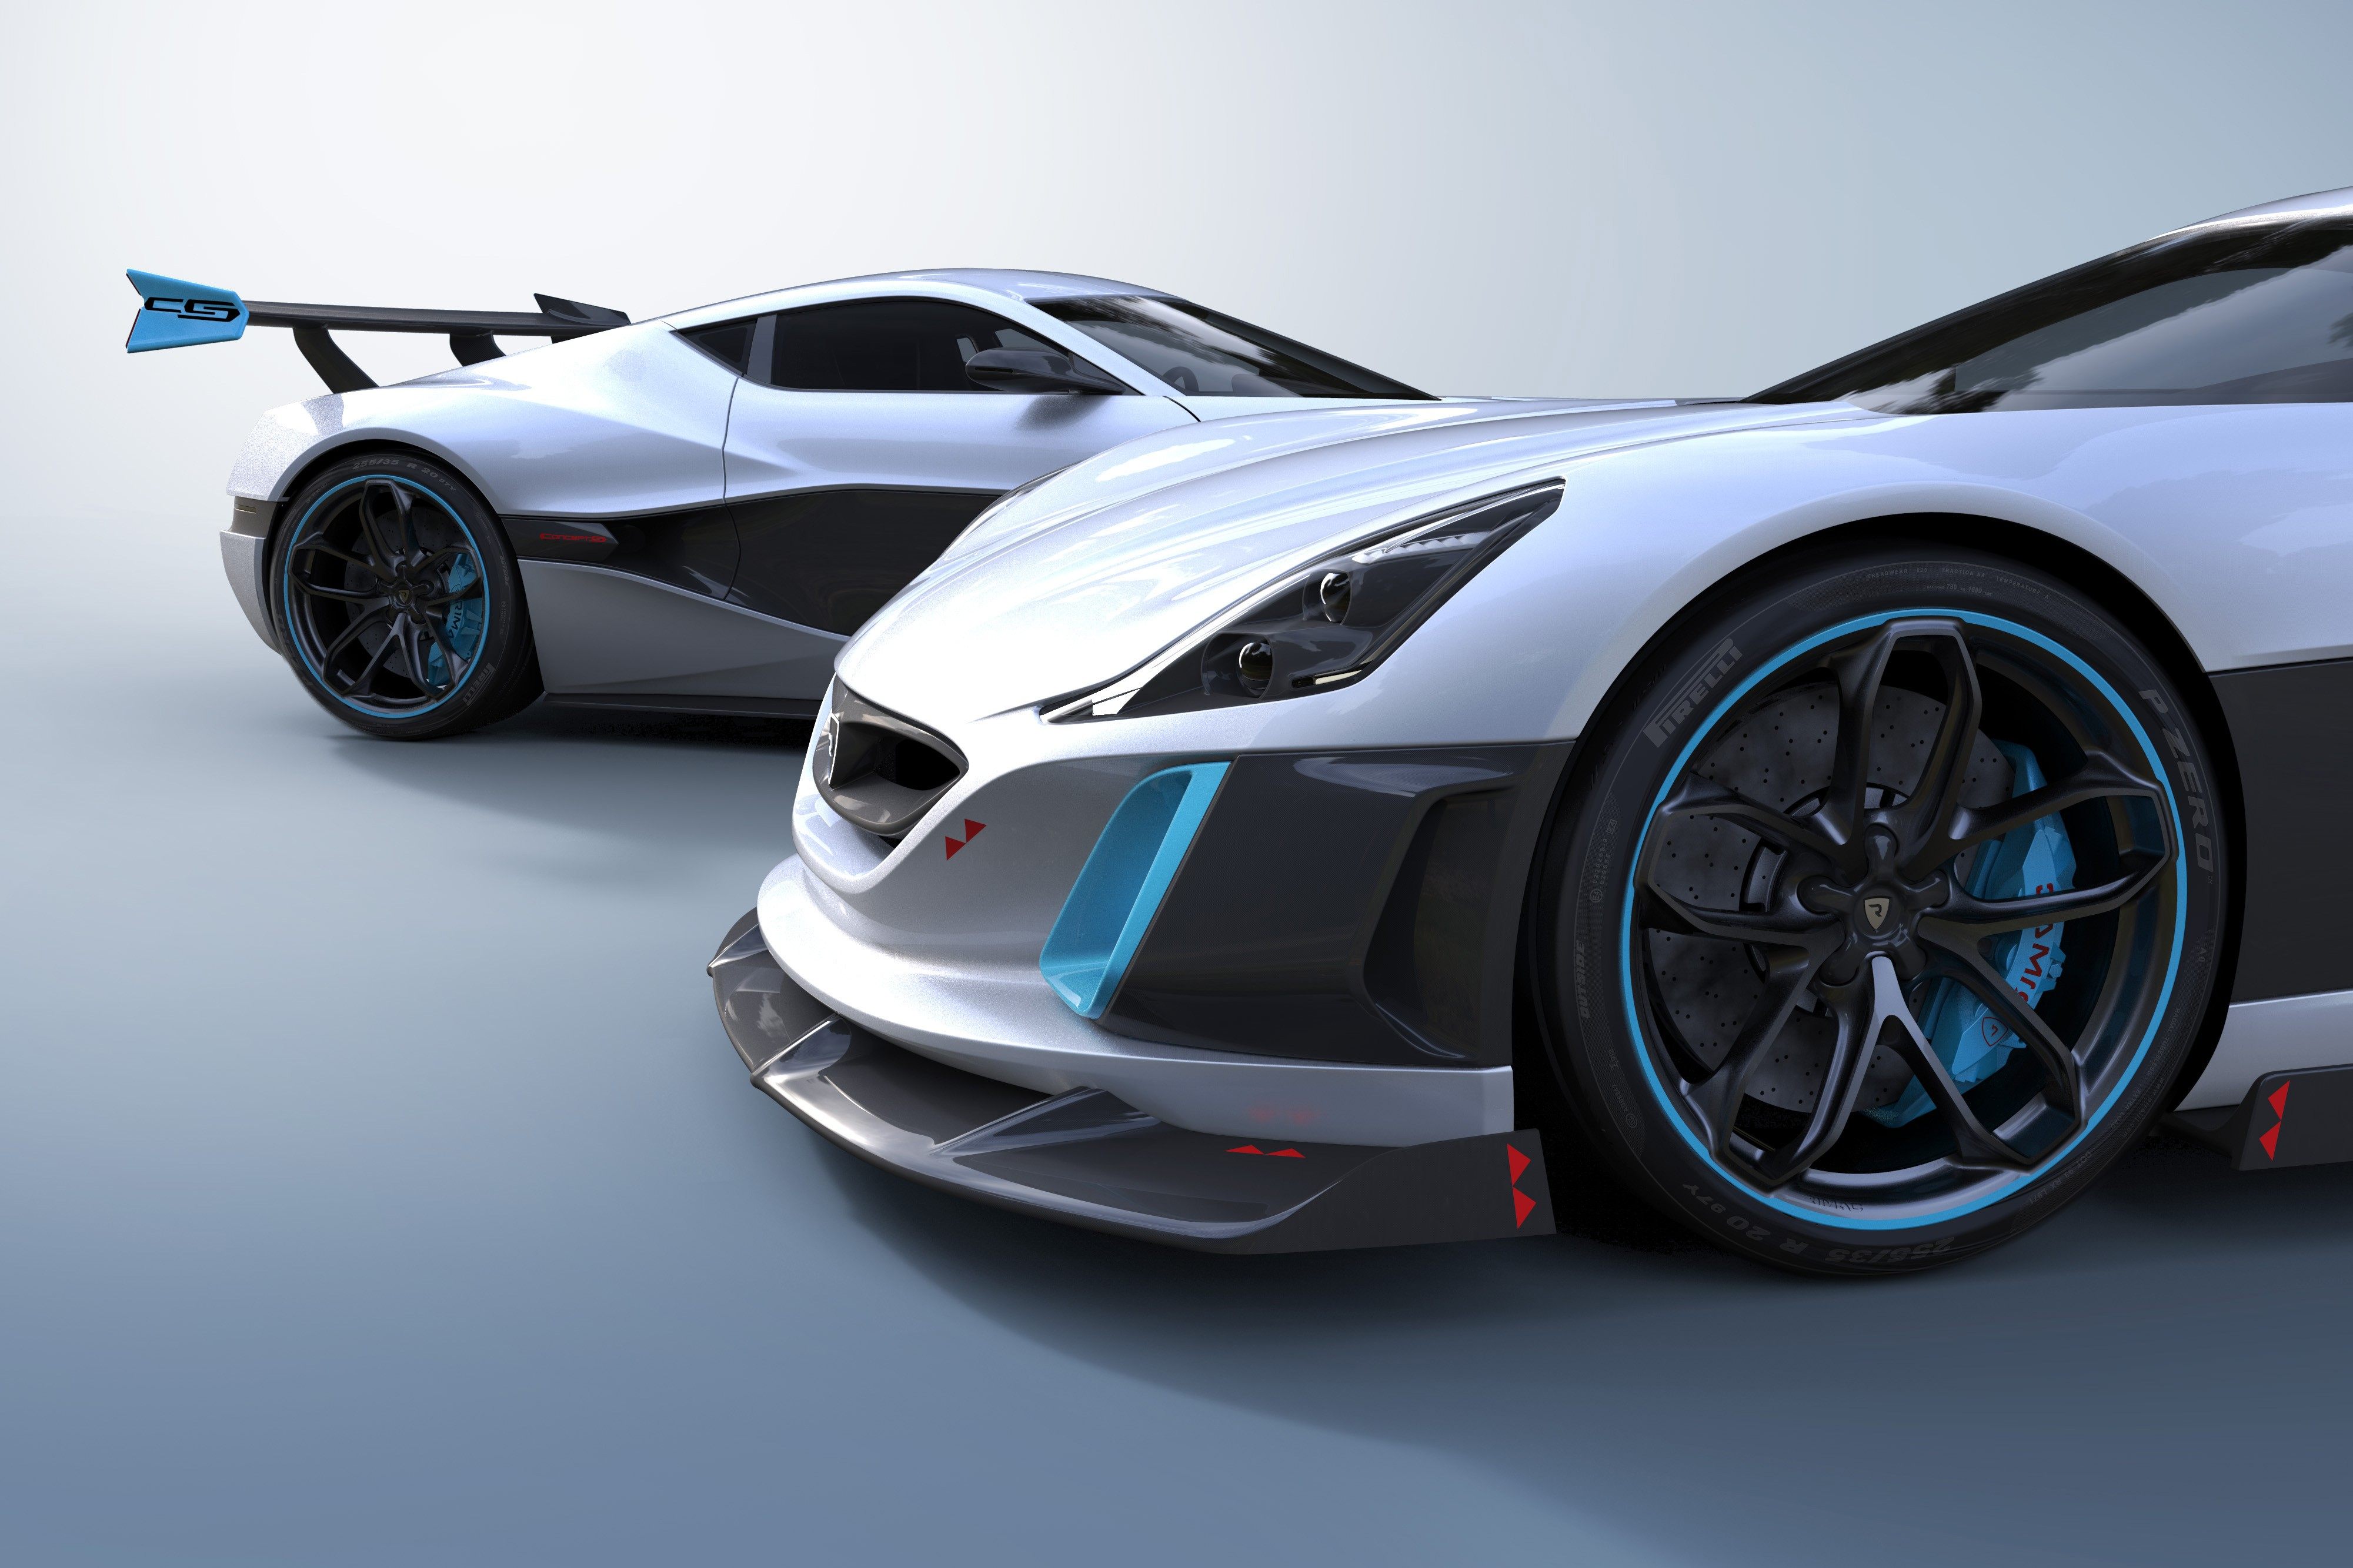 Cool Phone Wallpapers For Girls Wallpaper Rimac Concept S Electric Car Electric